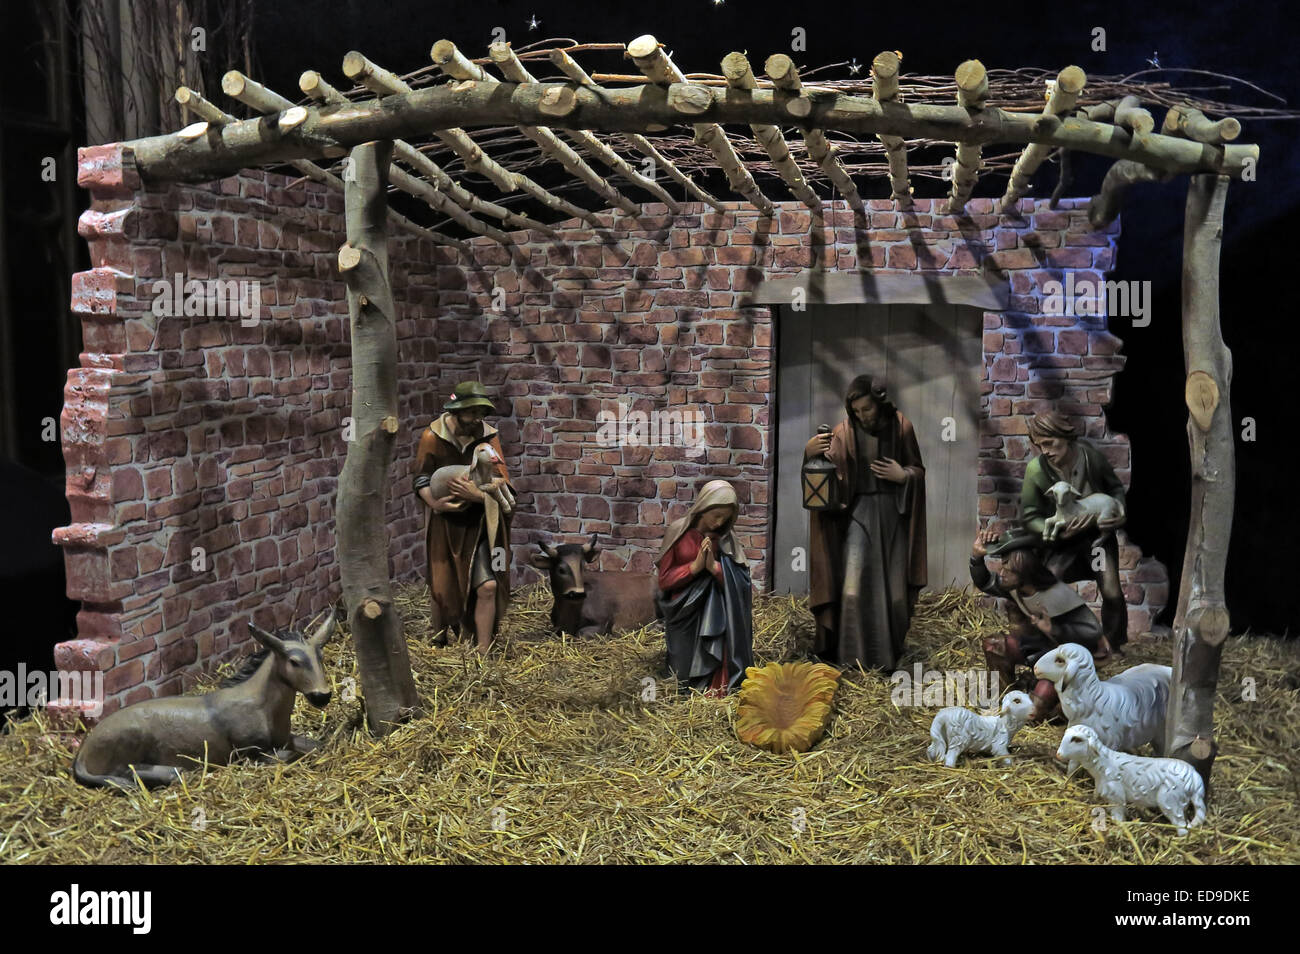 Manger and Christmas nativity scene at Lichfield cathedral Staffordshire, England UK - Stock Image